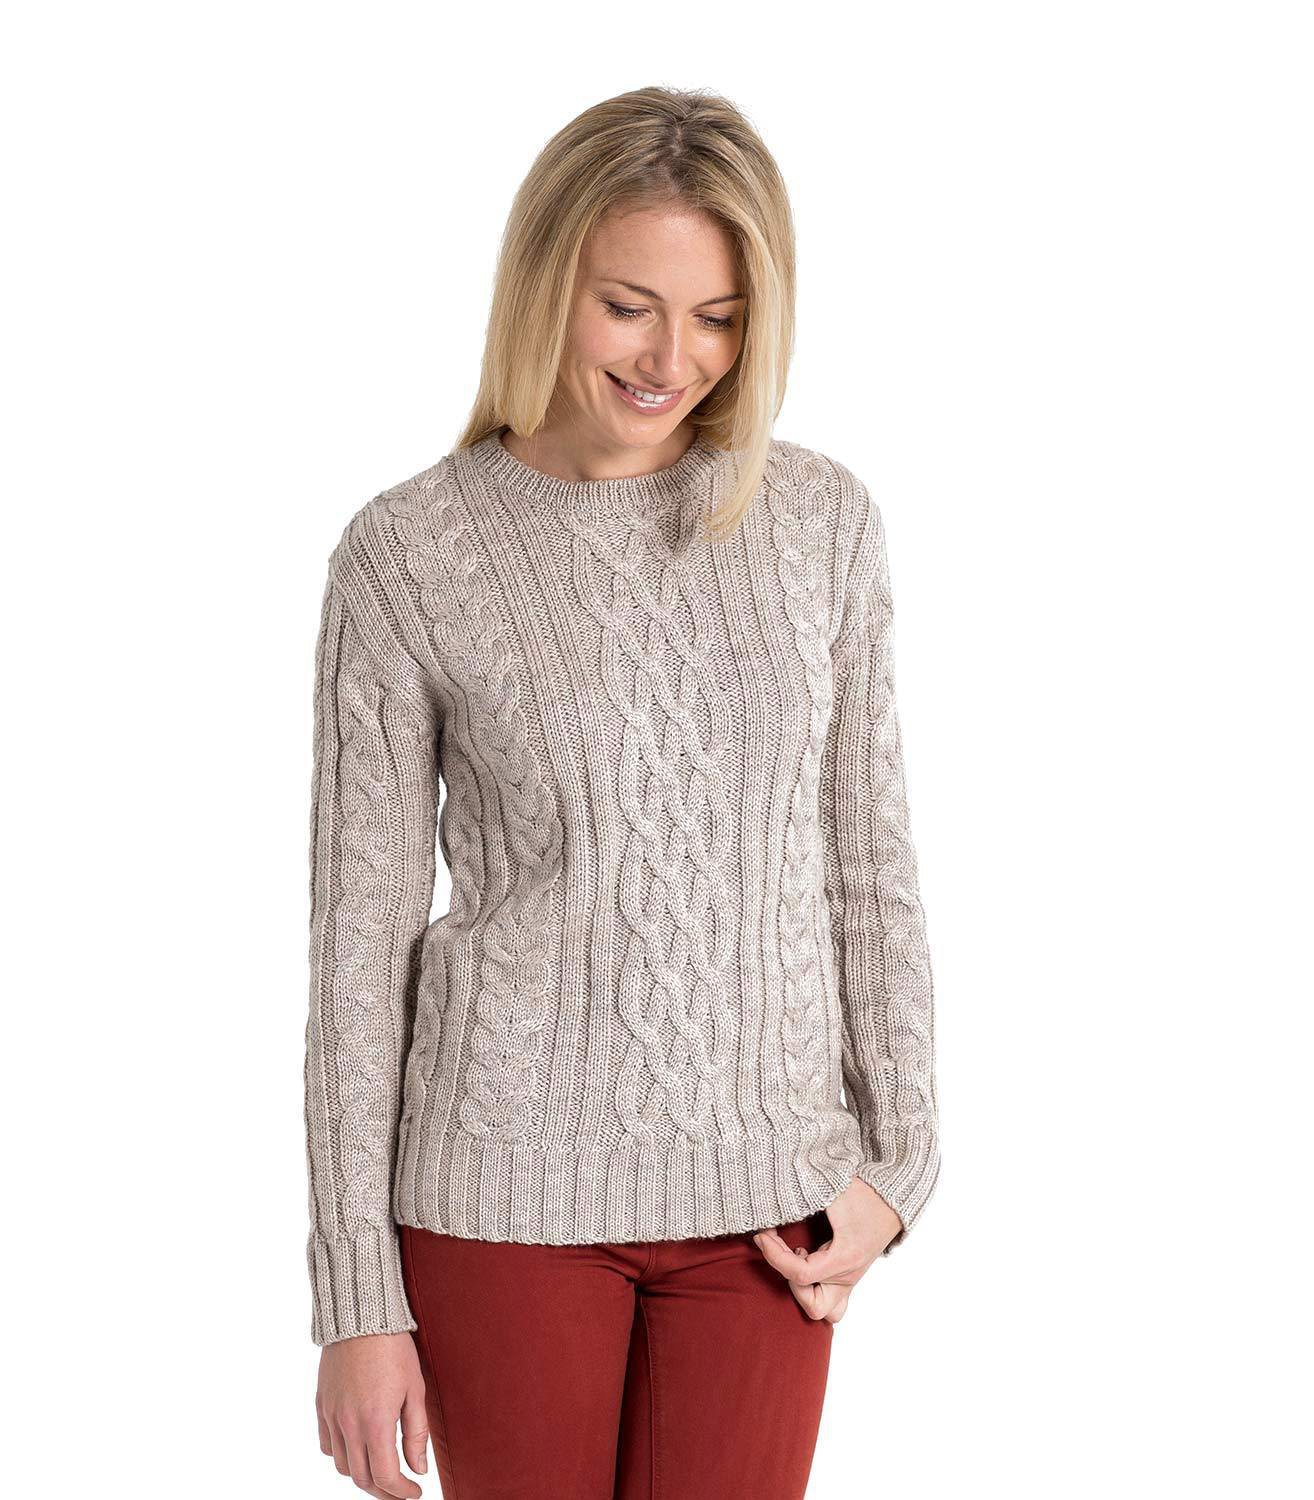 WoolOvers Womens Pure Wool Aran Sweater Jumper Pullover Knitted Knitwear